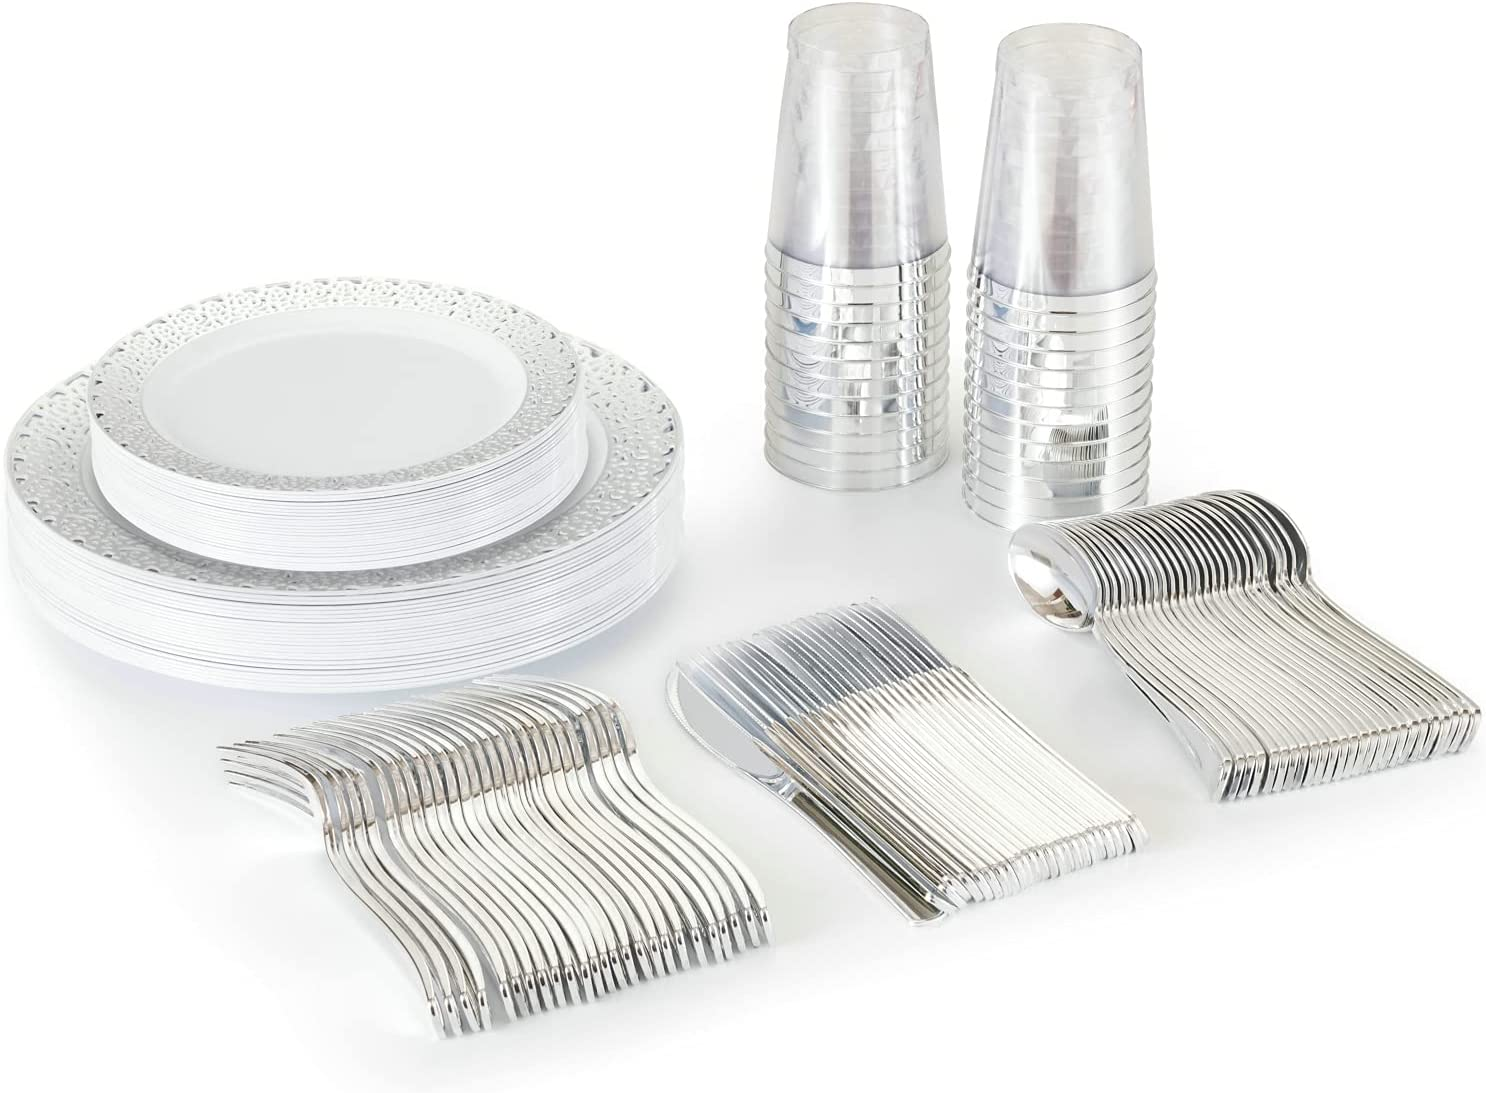 JYHOWIRE Disposable Miami Mall Plates with Cutlery 1 year warranty - Silver And Piece w 125